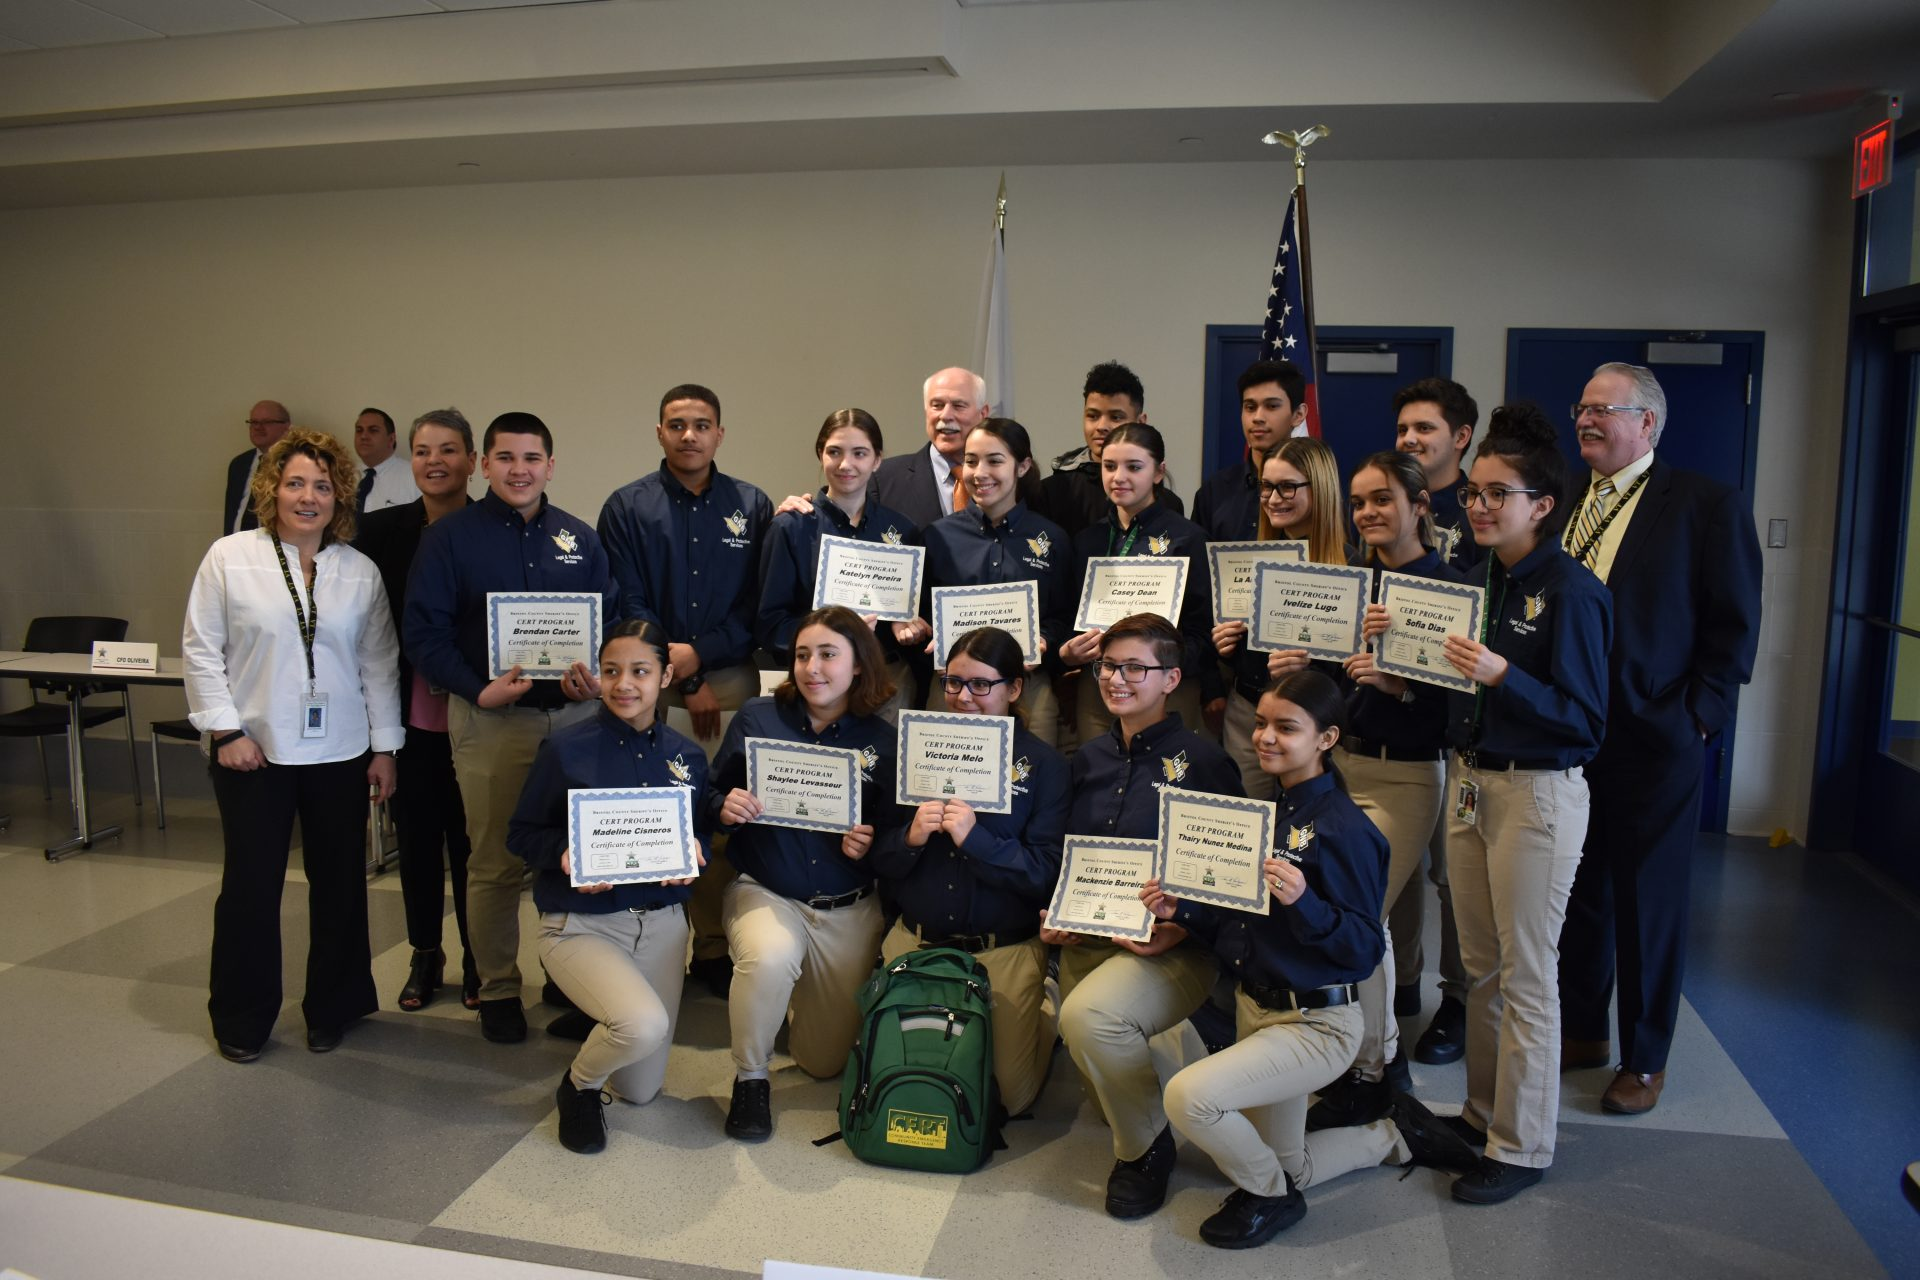 Legal and Protective Services CERT Certification Ceremony